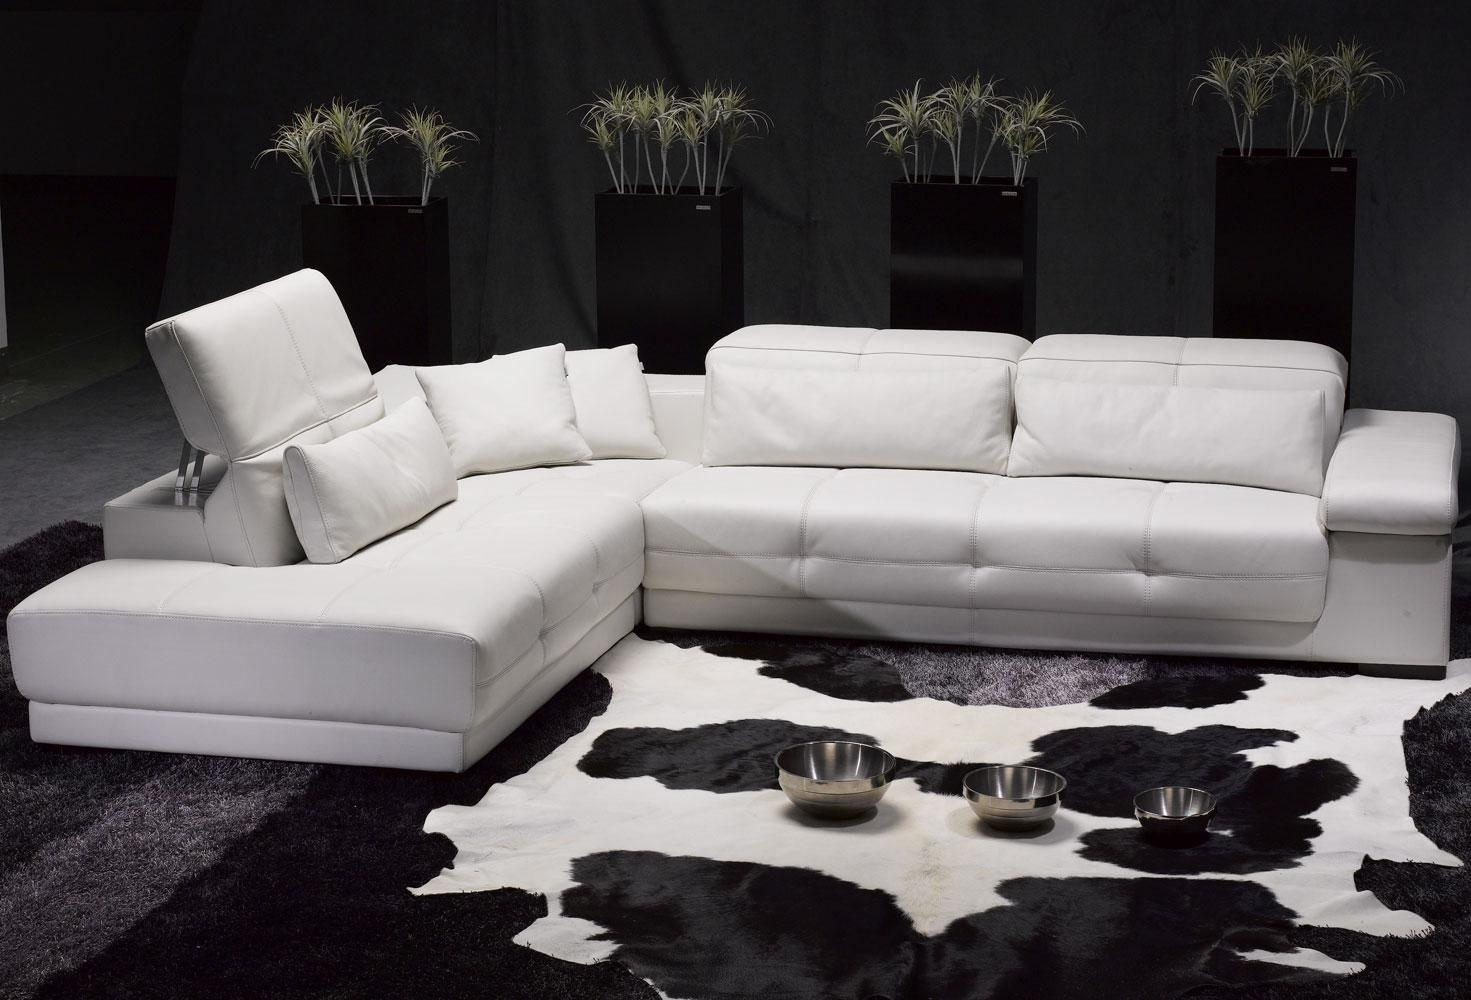 Alluring White Leather Sectional Sofa Ideas For Living Room Regarding Leather Sectional Sofas Toronto (View 19 of 20)